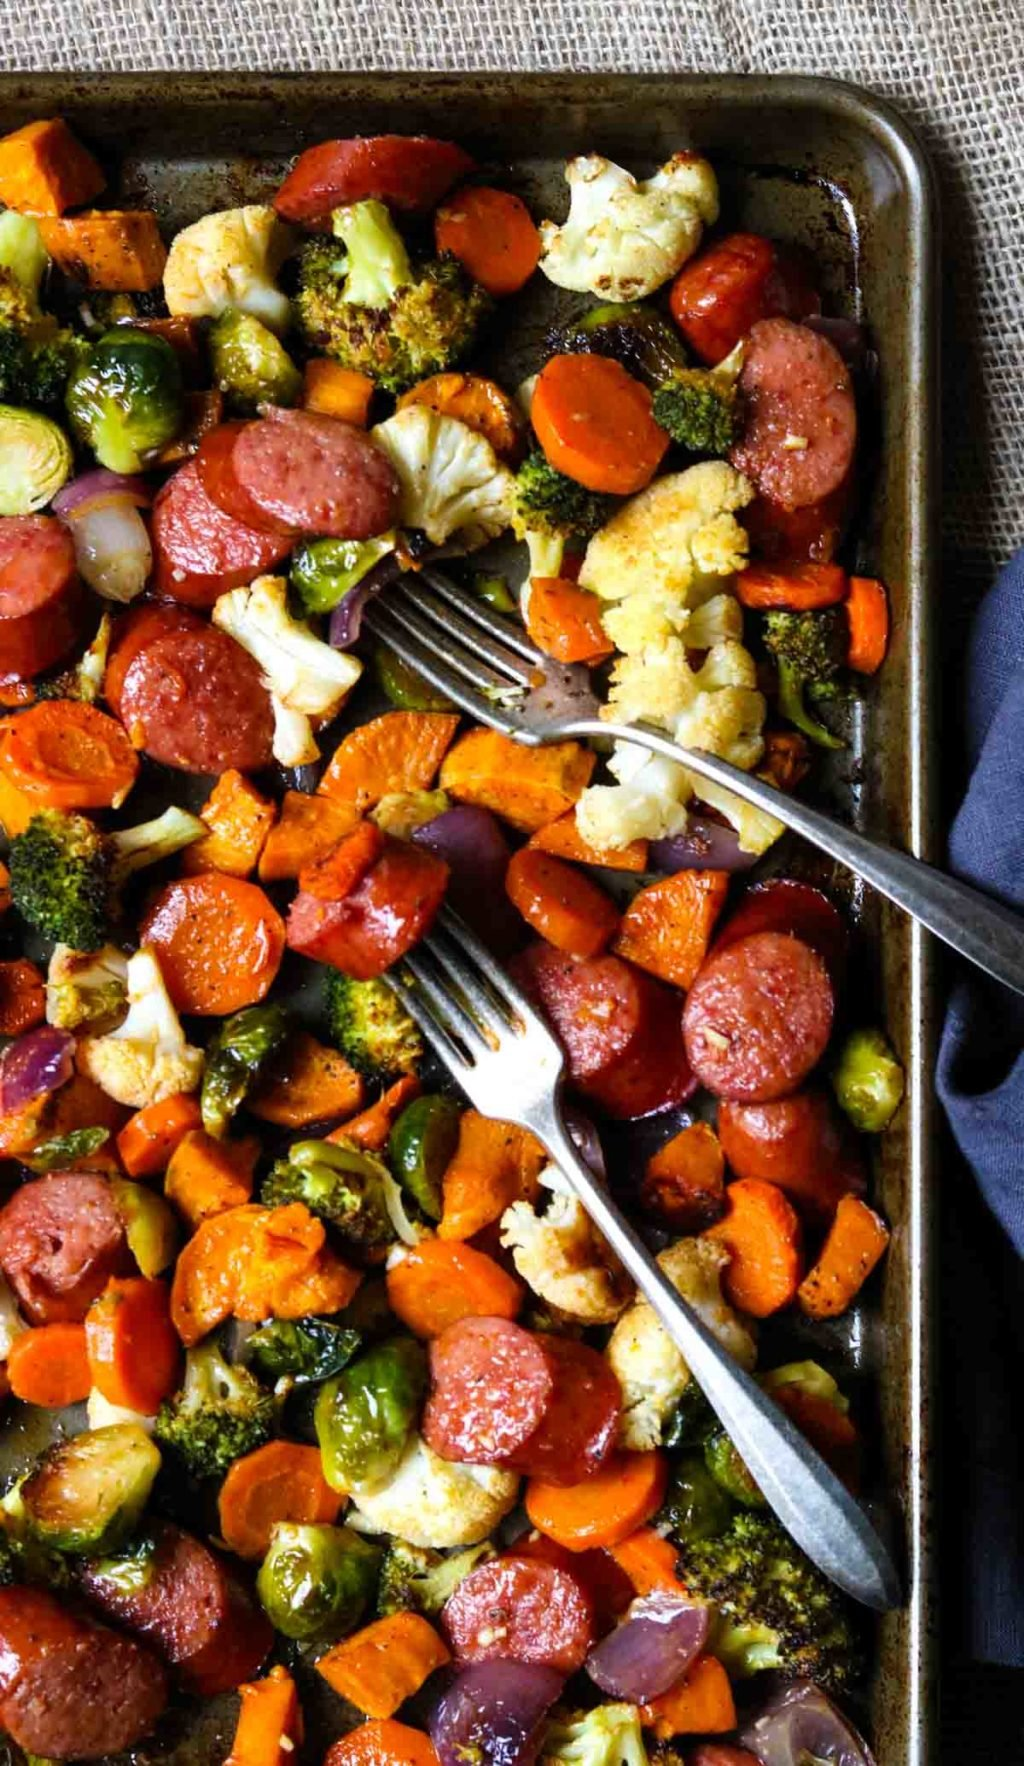 A sheet pan with two forks, full of roasted cauliflower, broccoli, brussle sprouts, carrots, sweet potatoes, and sausage